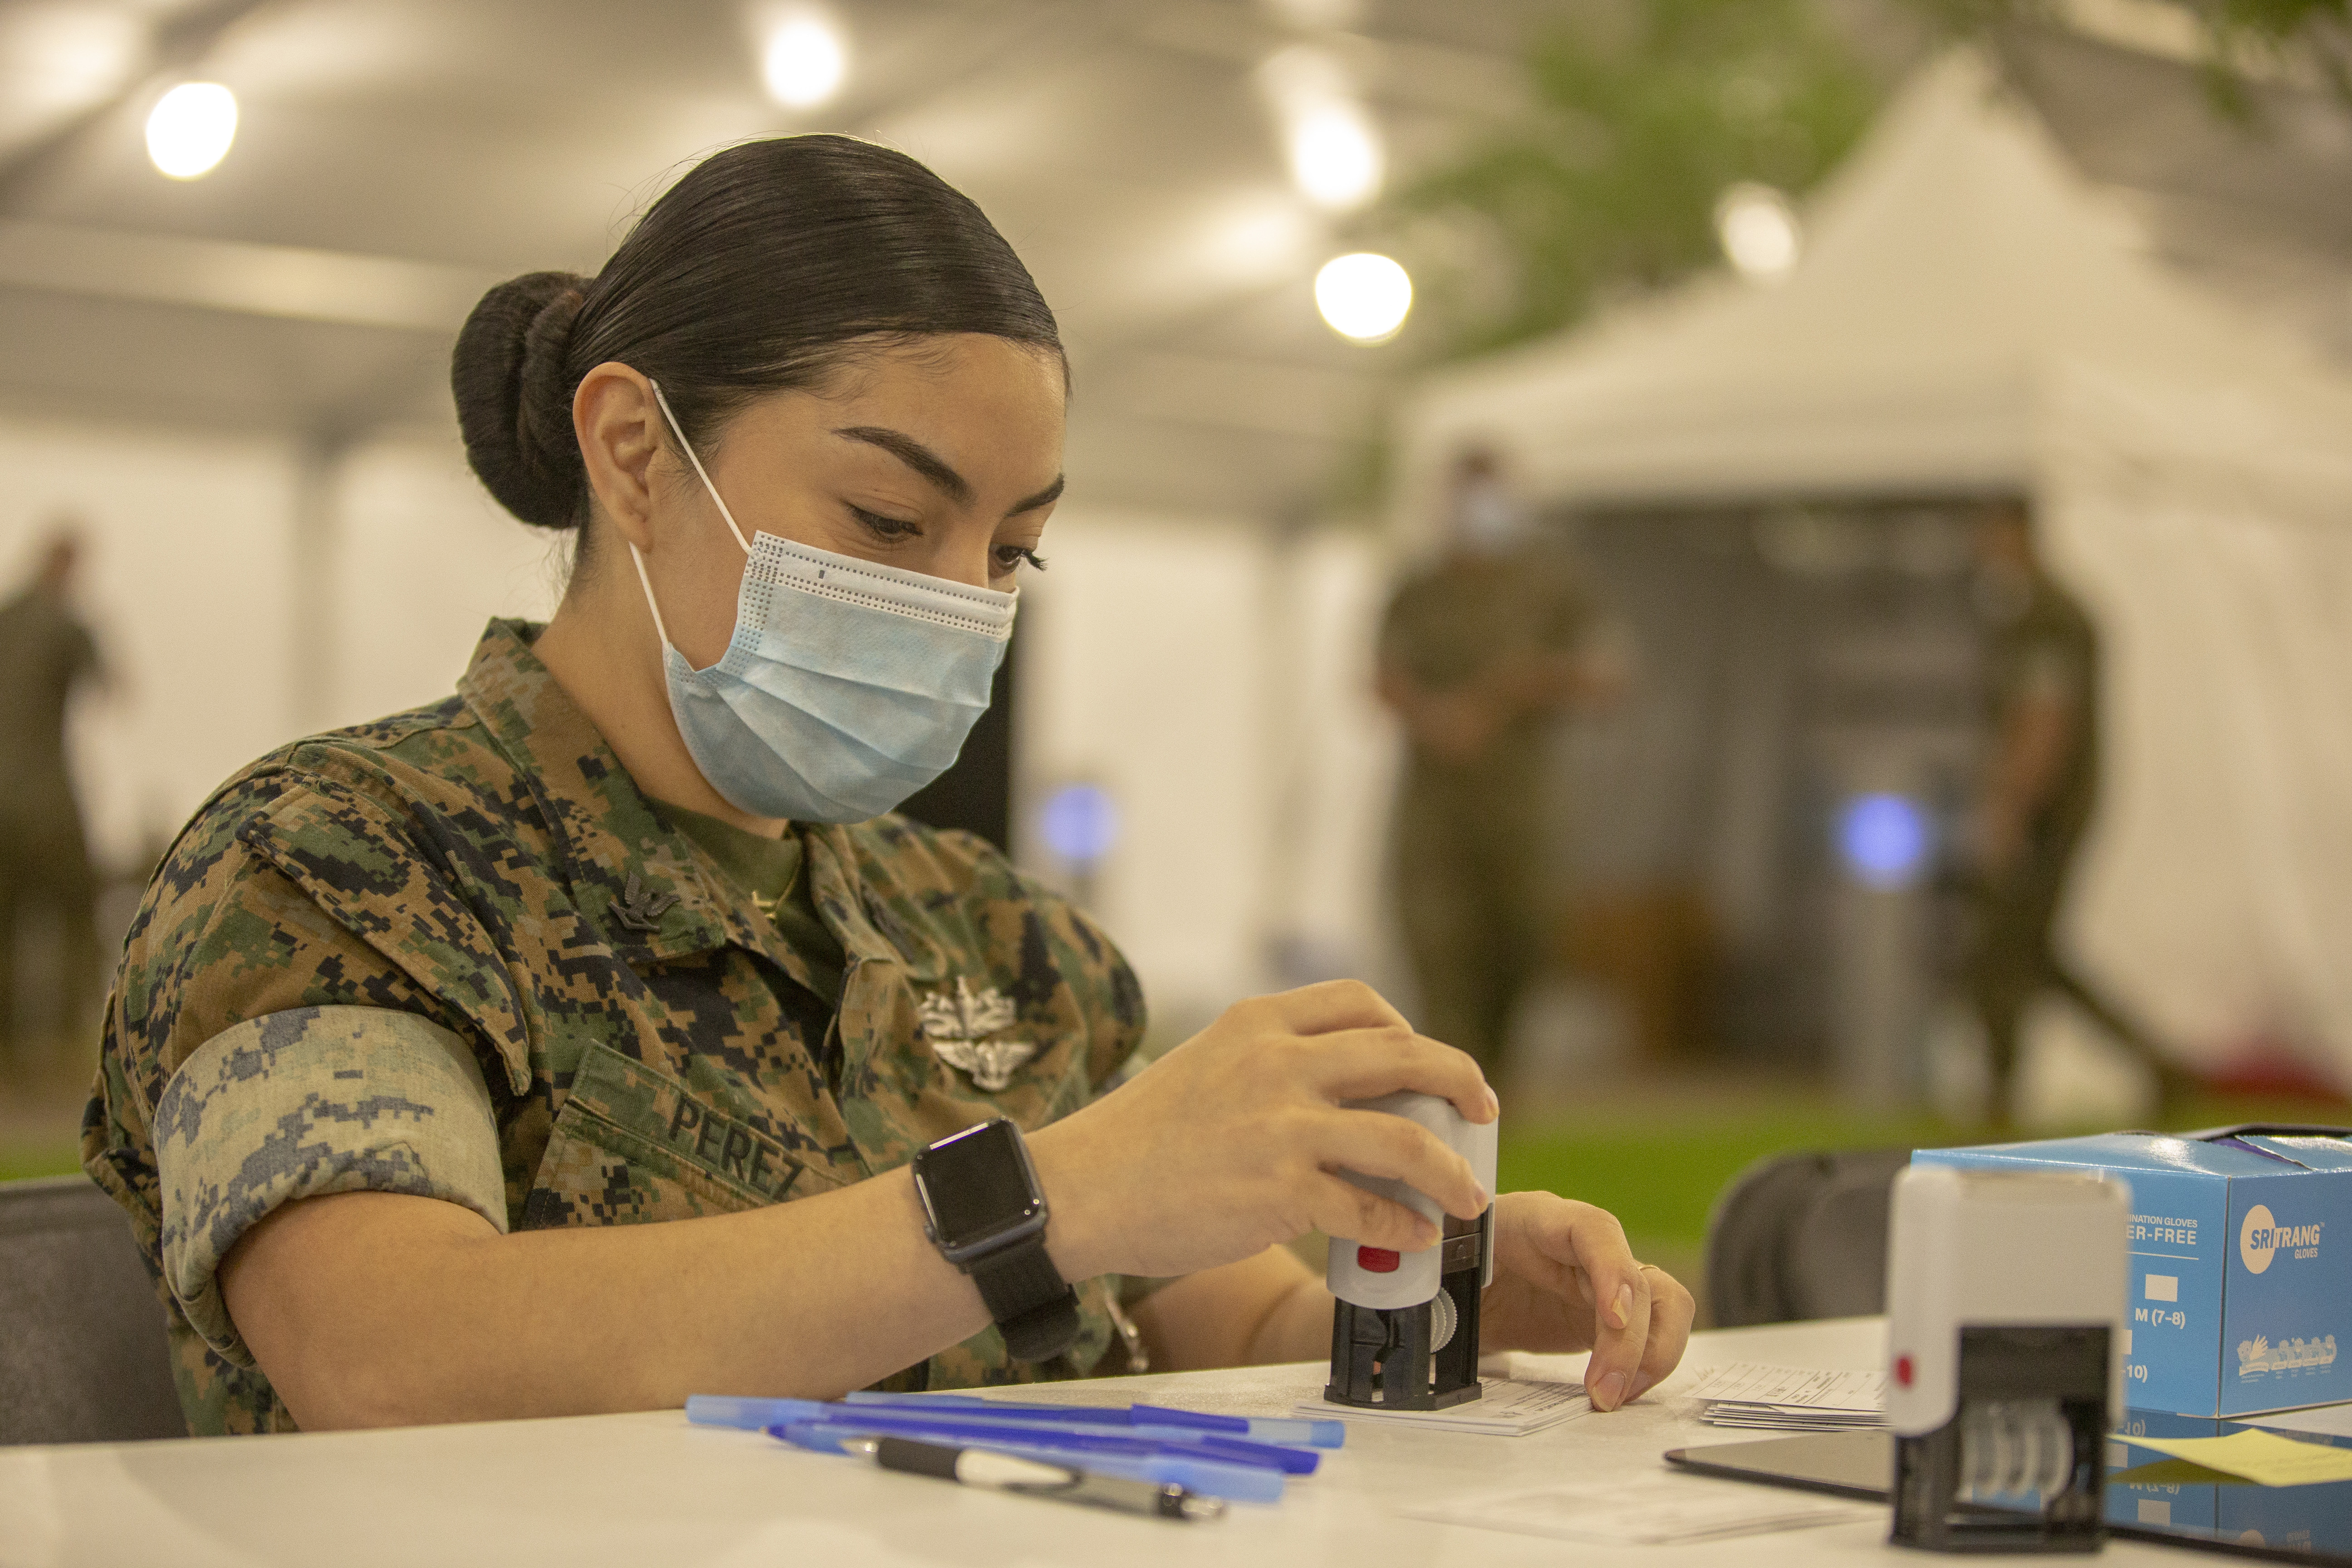 Hospital Corpsman 3rd Class Dora Perez assigned to 2d Marine Division, Camp Lejeune, North Carolina, prepares vaccination cards at the Memphis Community Vaccination Center in Memphis, Tennessee.